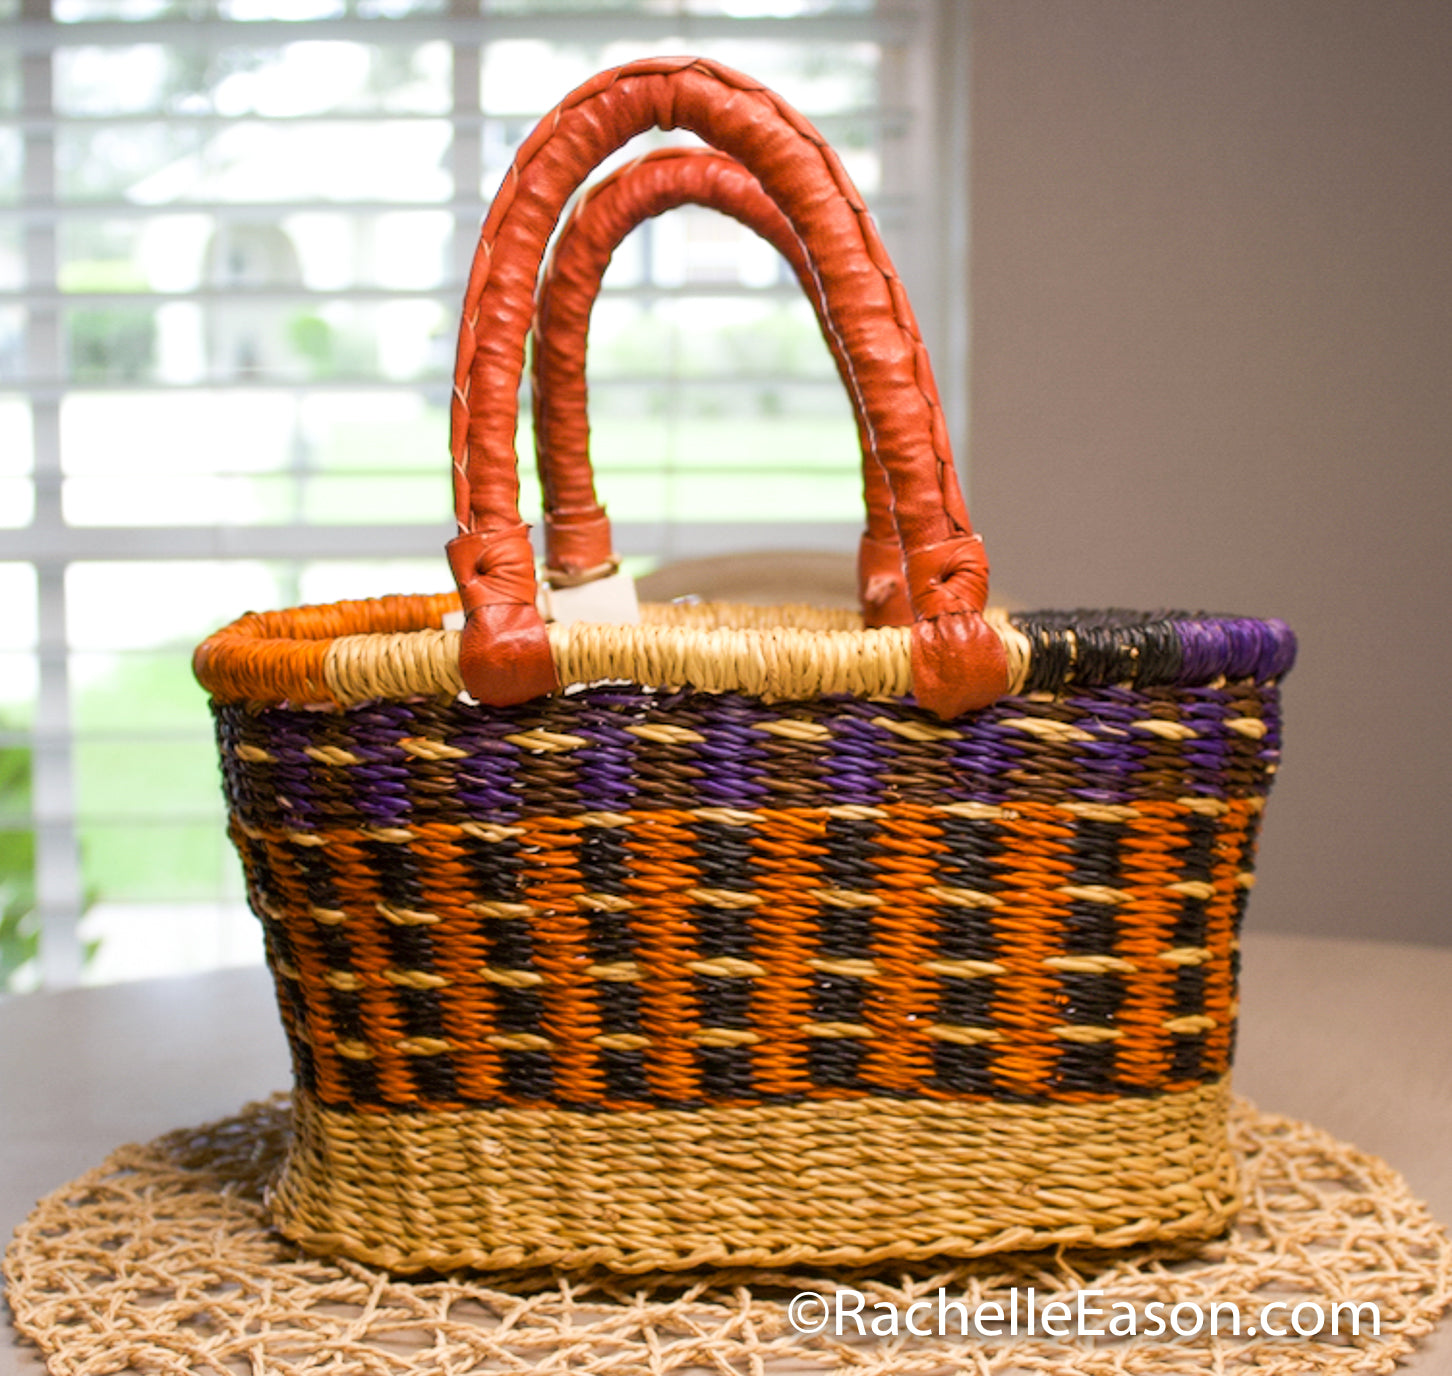 Bolga Basket - Purple/Orange  - Mini Oval Shopper - Art Supply Tote